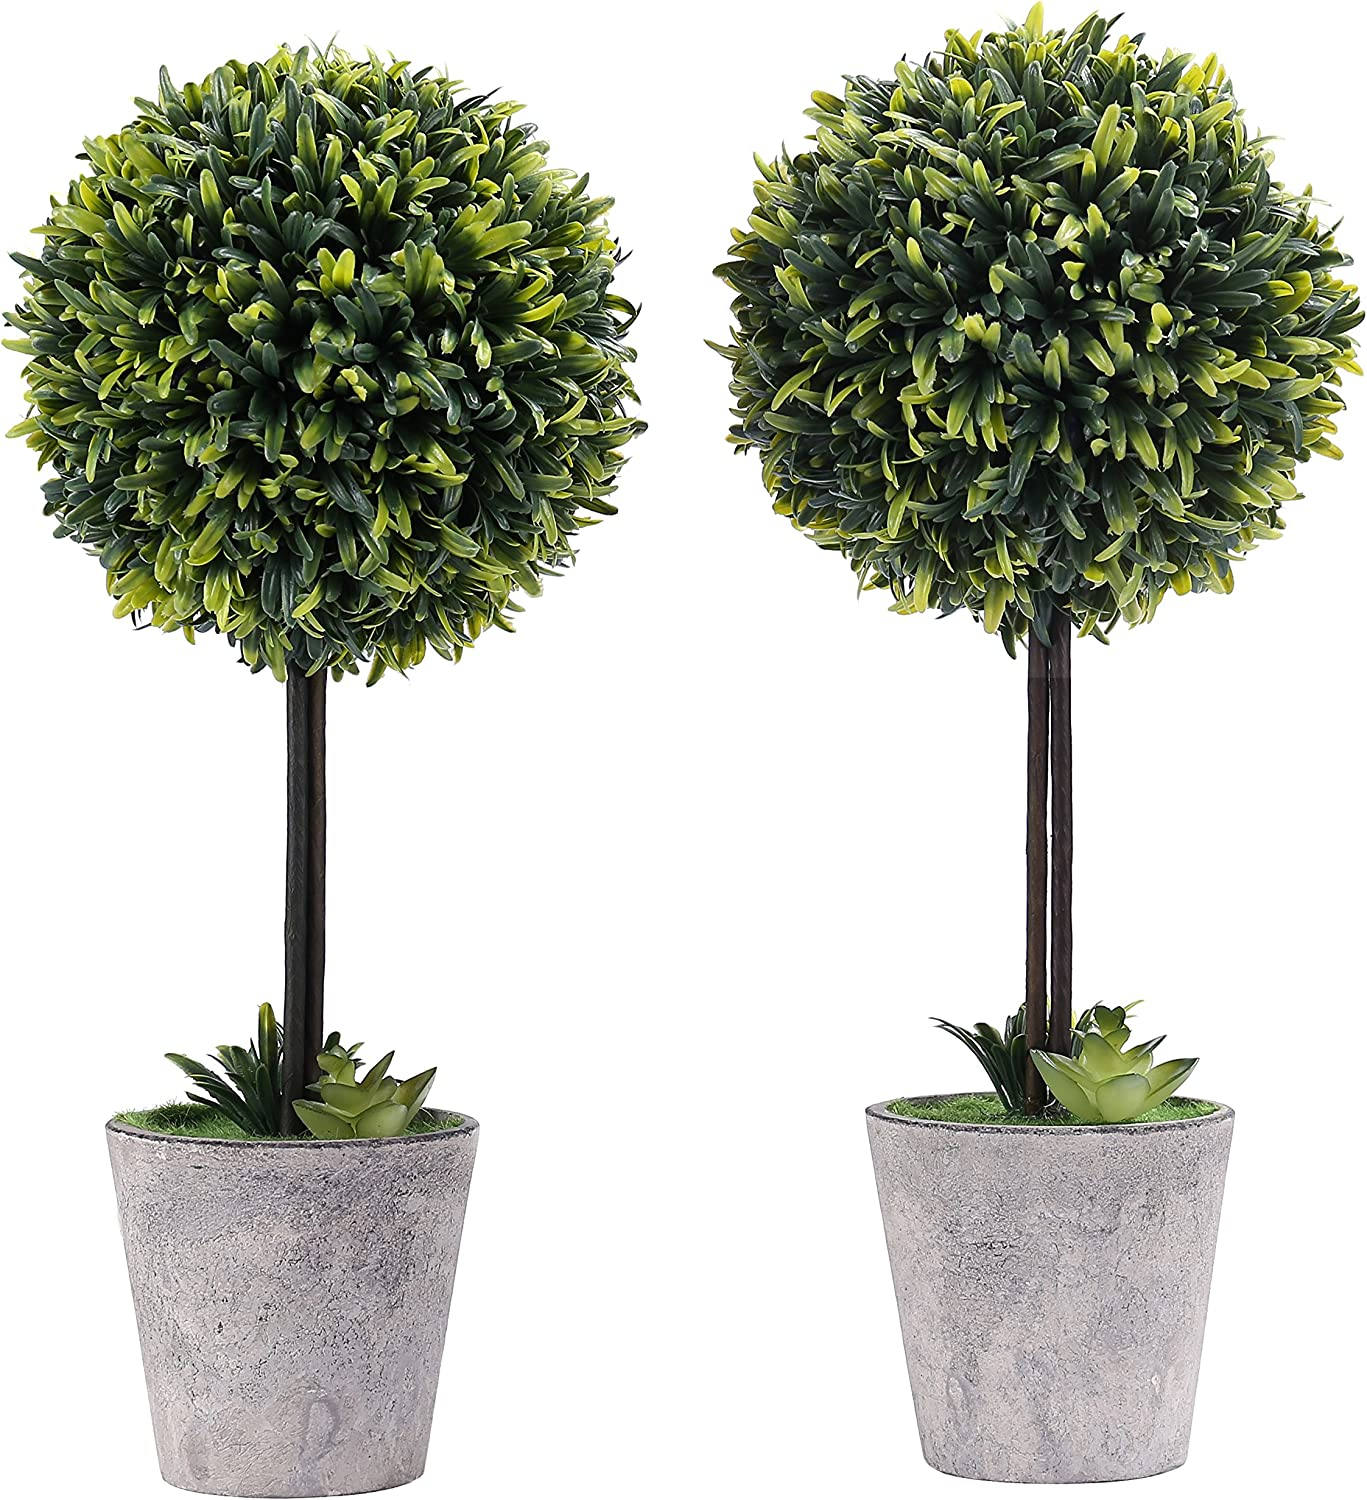 Mygift Artificial Boxwood Topiary Tree In Modern Gray Pulp Planter Set Of 2 Amazon Co Uk Kitchen Home